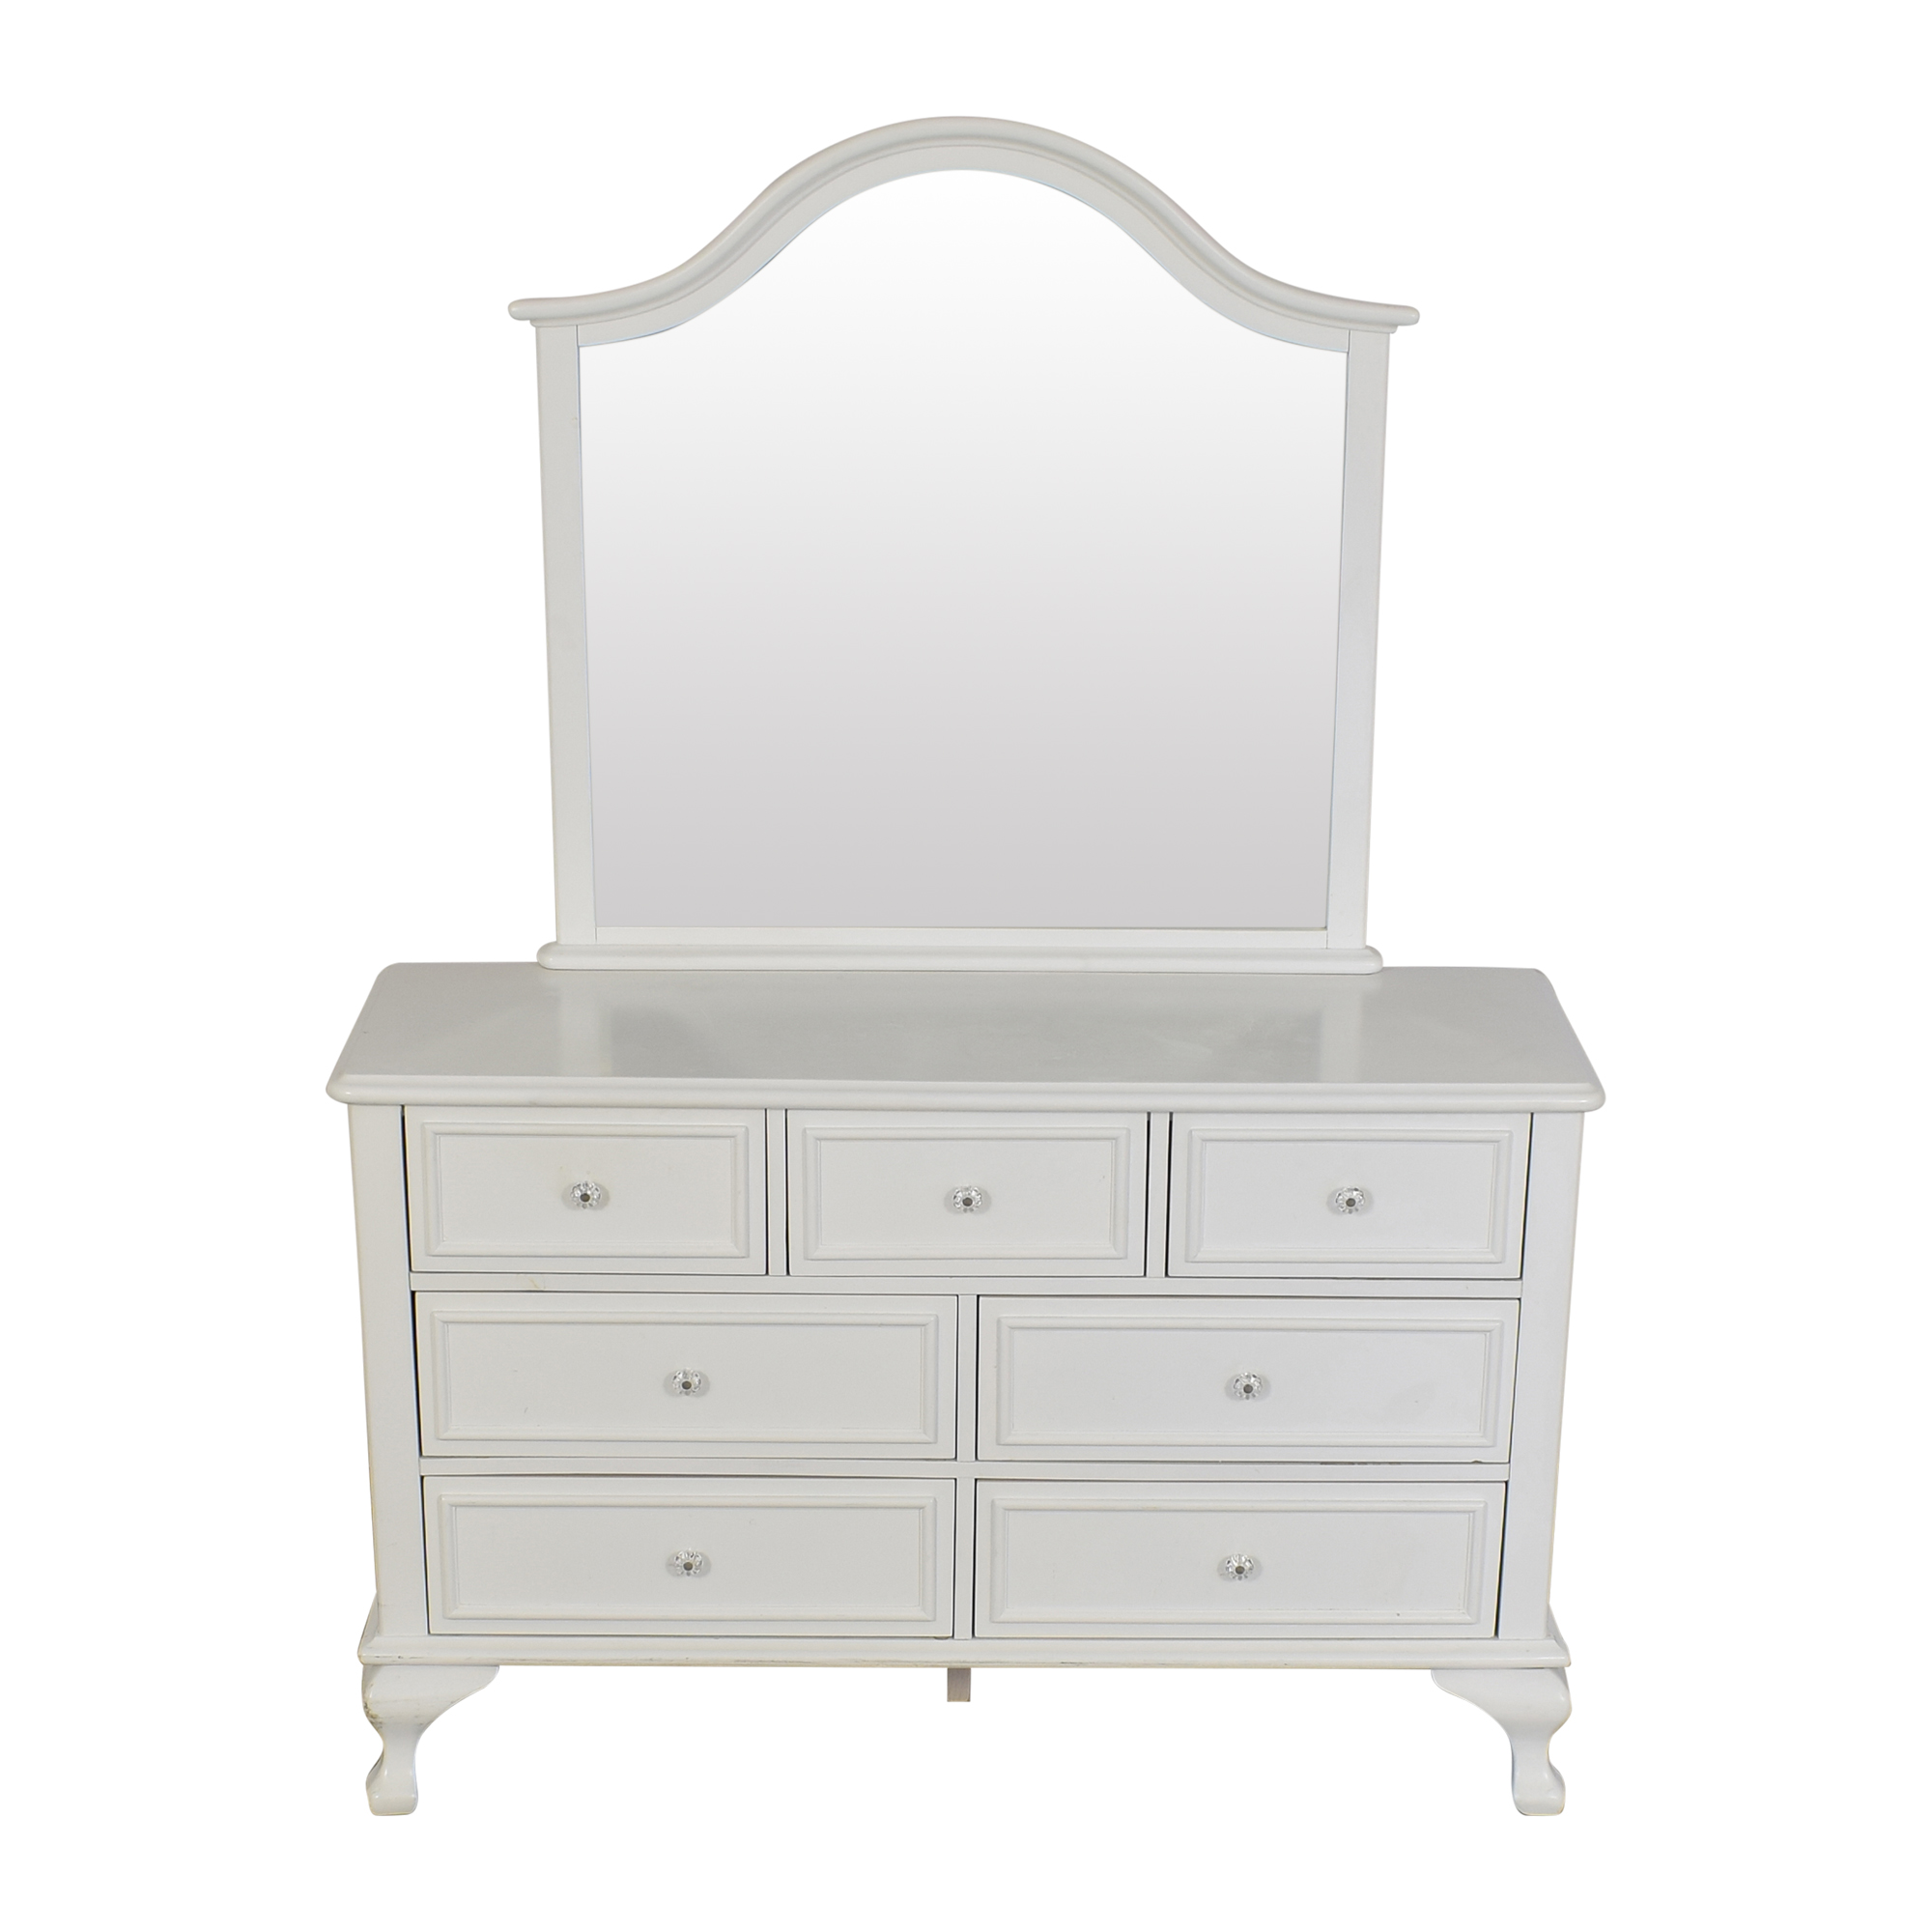 Picket House Furnishings Dresser with Mirror sale